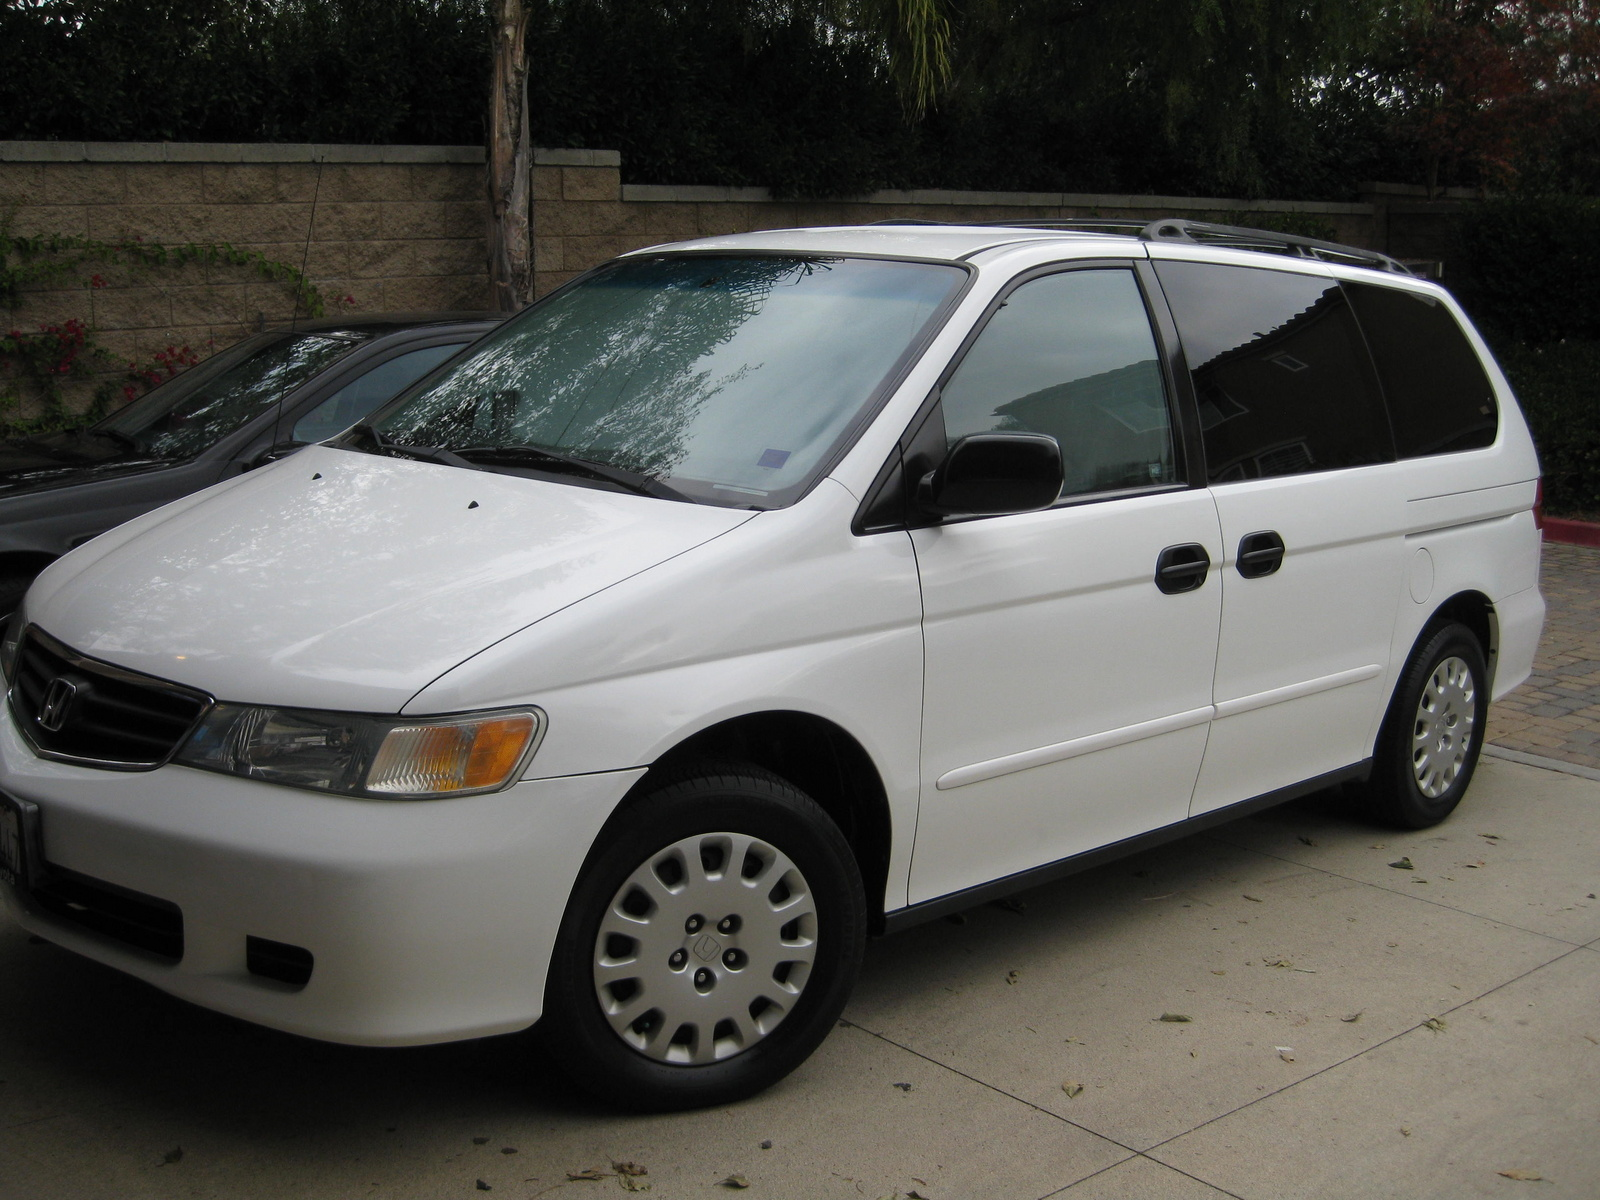 Town And Country Honda >> 2002 Honda Odyssey - Pictures - CarGurus